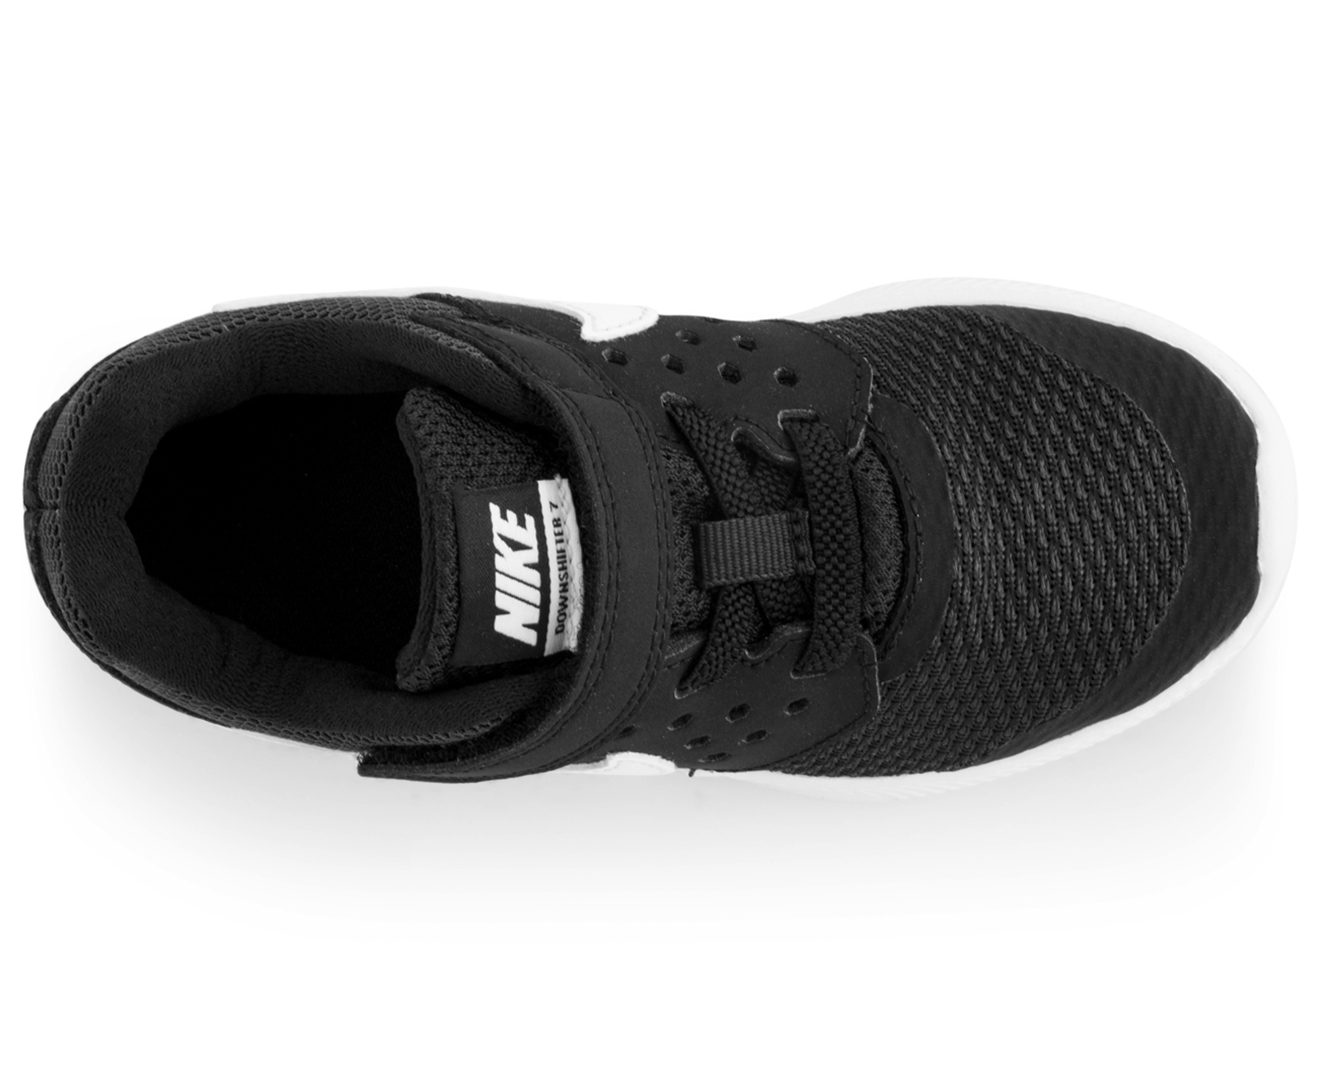 39bb0f5aadf Nike Boys  Toddler Downshifter 7 Shoe - Black White-Anthracite ...